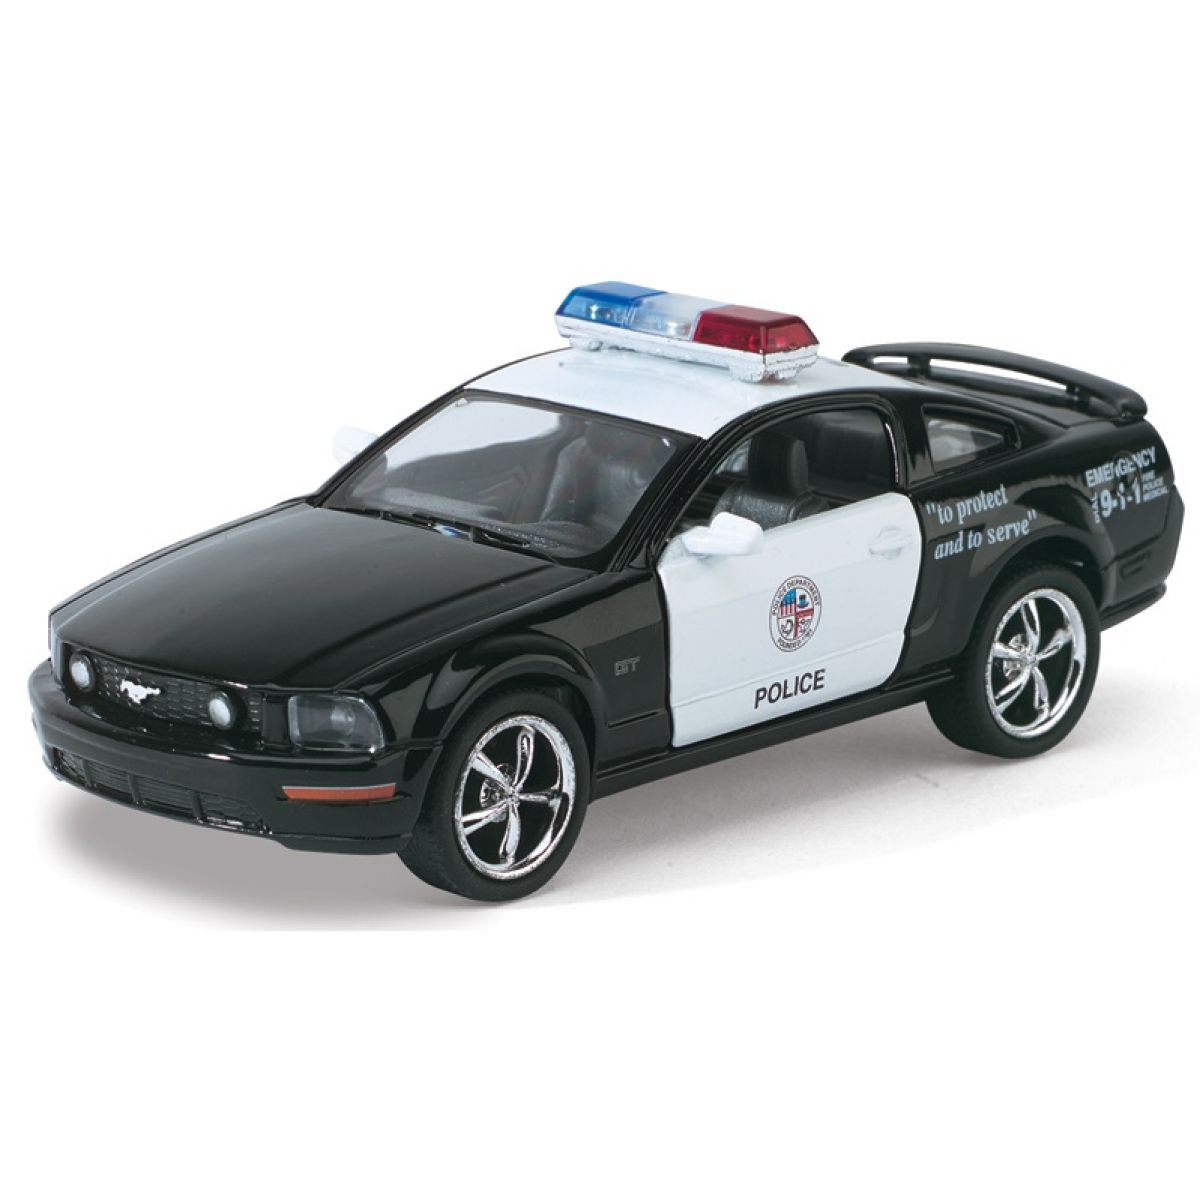 Kinsmart Auto Ford Mustang GT Policie